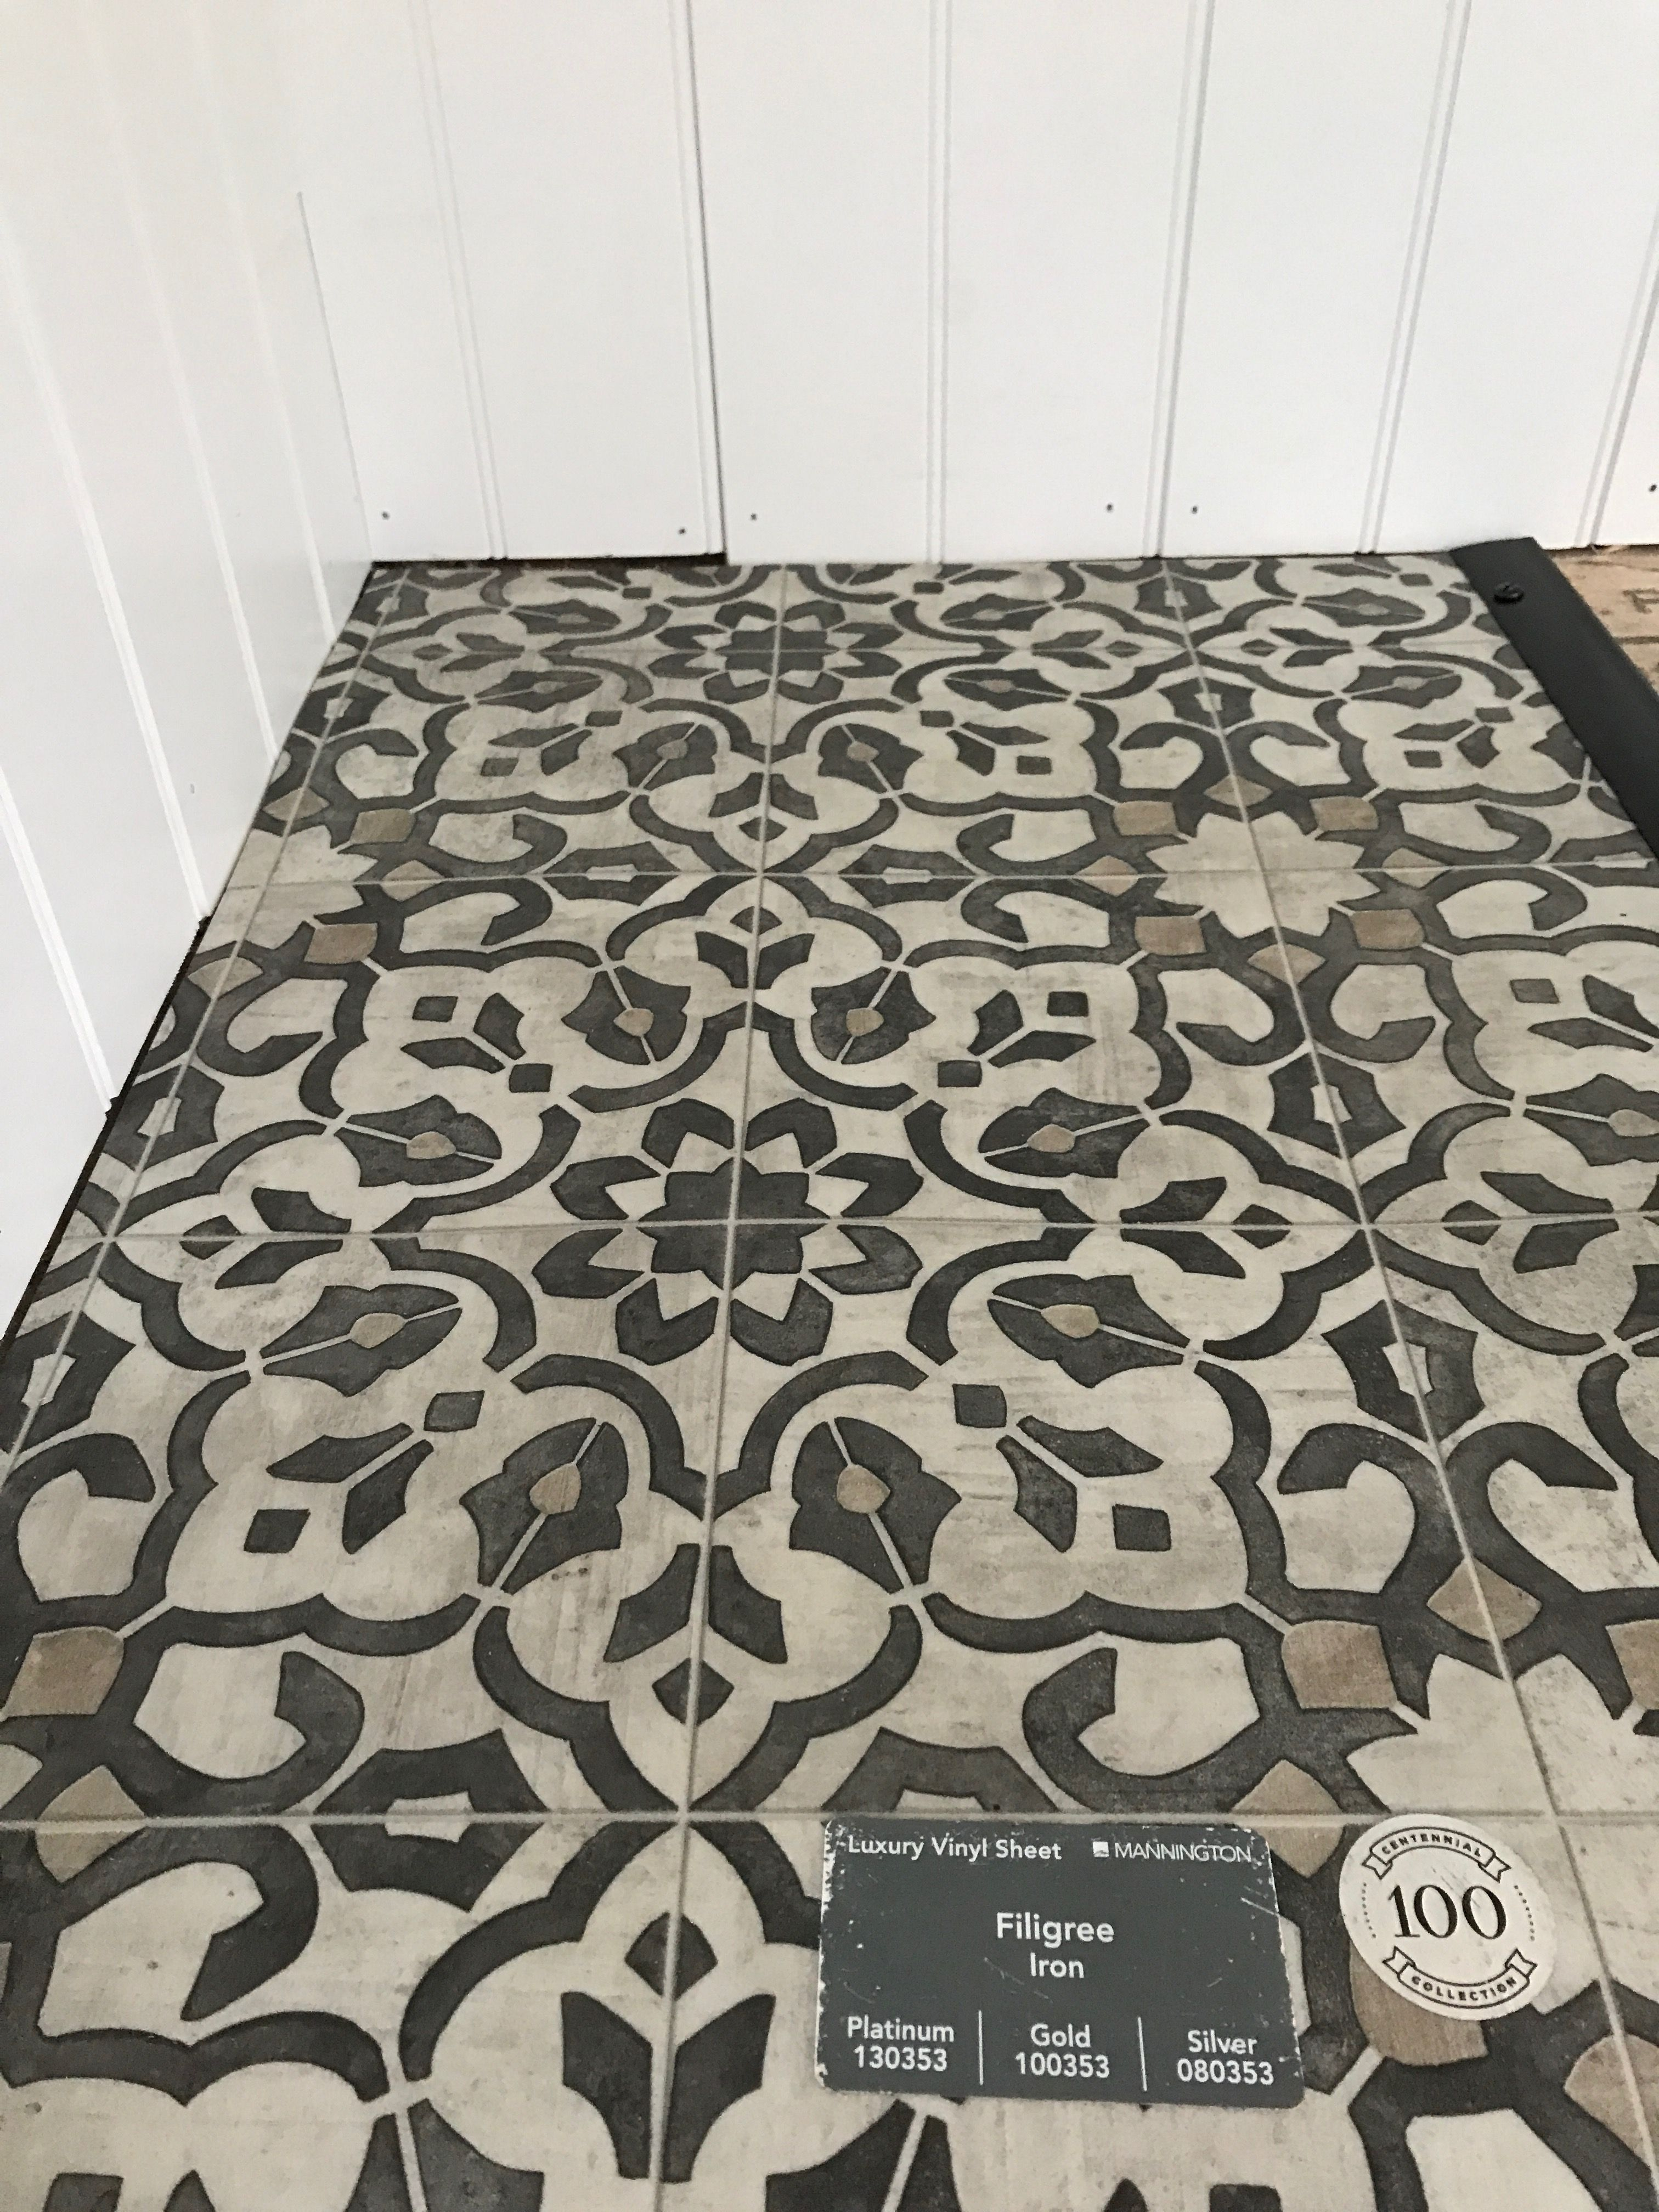 Pin By Carletta Ooton On Yarmouth Mudroom Mannington Vinyl Flooring Vinyl Flooring Bathroom Pretty Floors